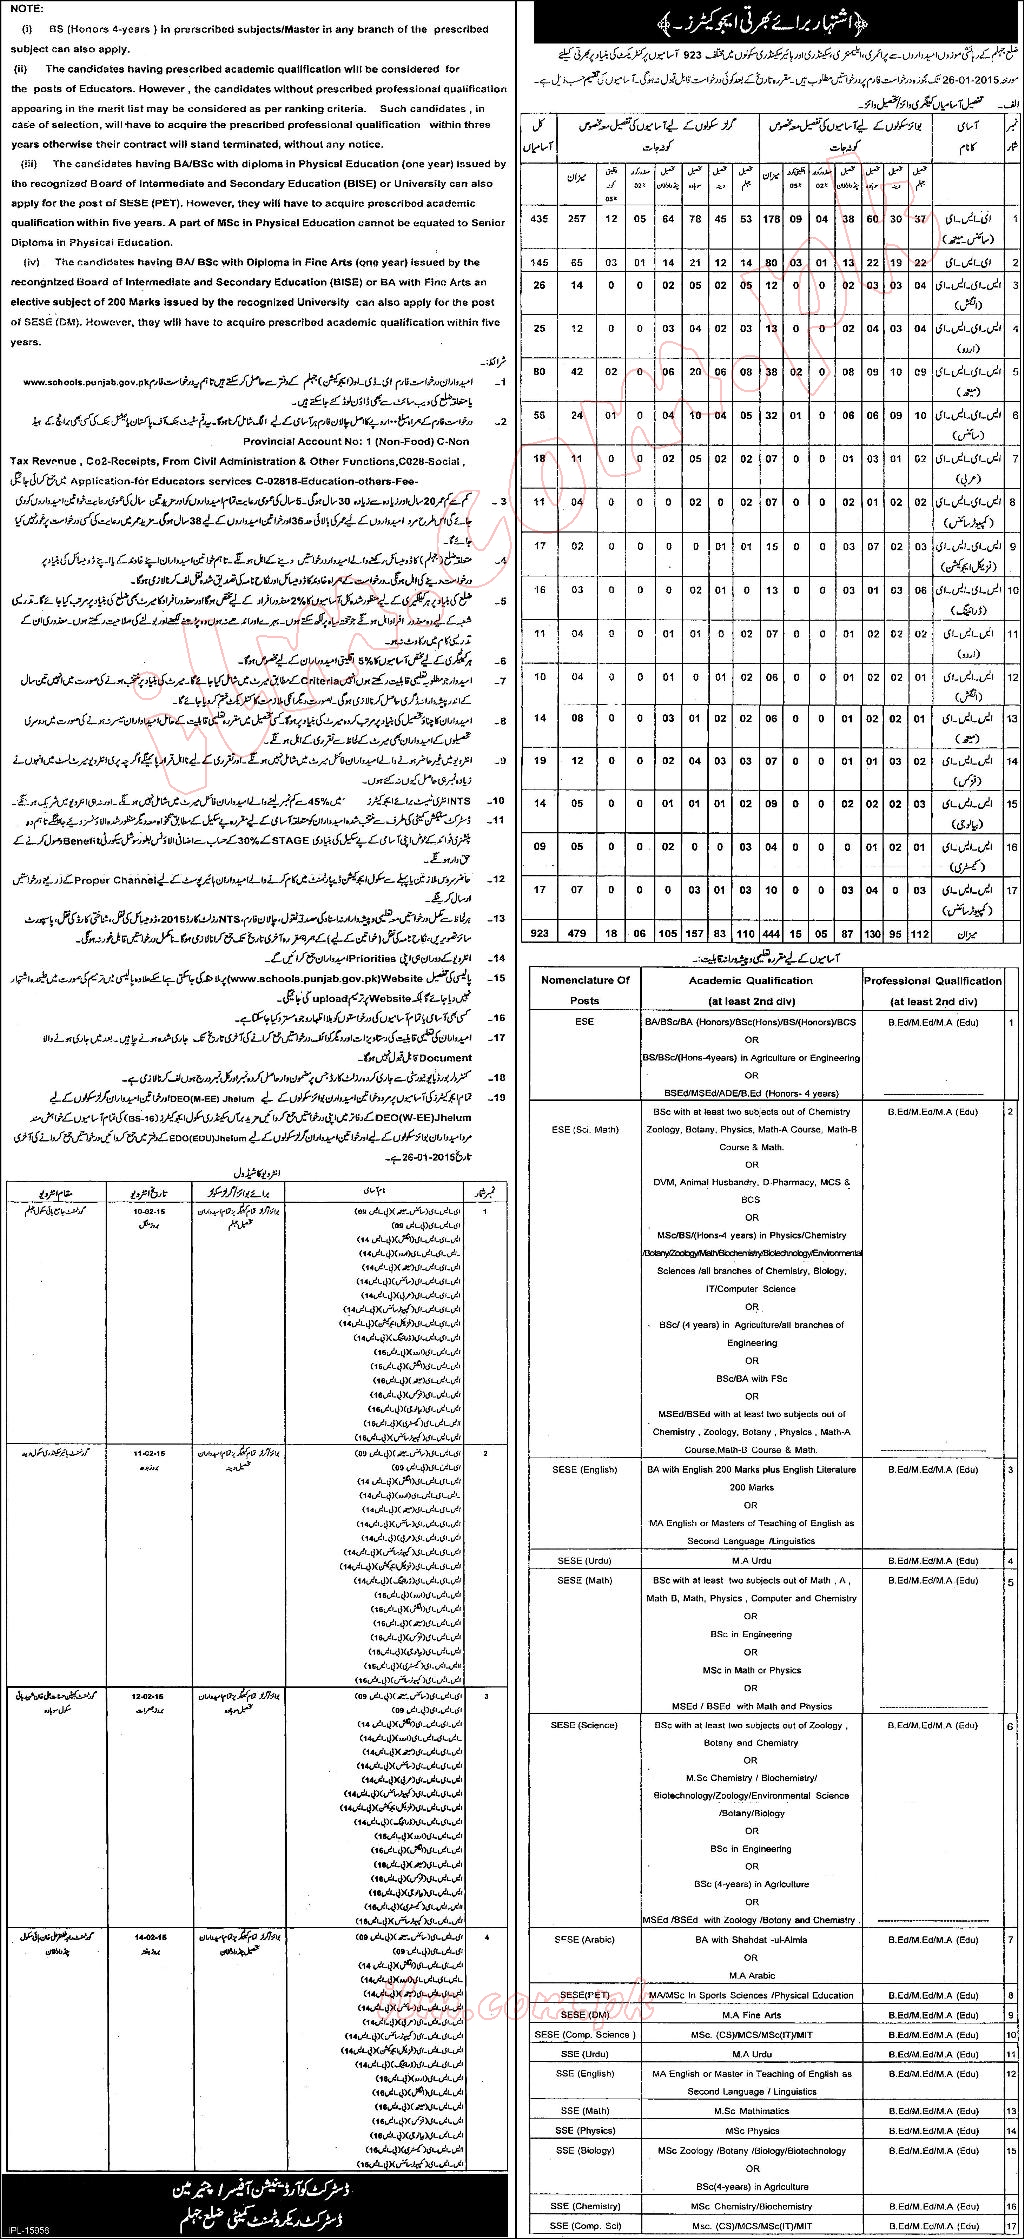 Punjab Educators Jobs 2015 for District Jhelum